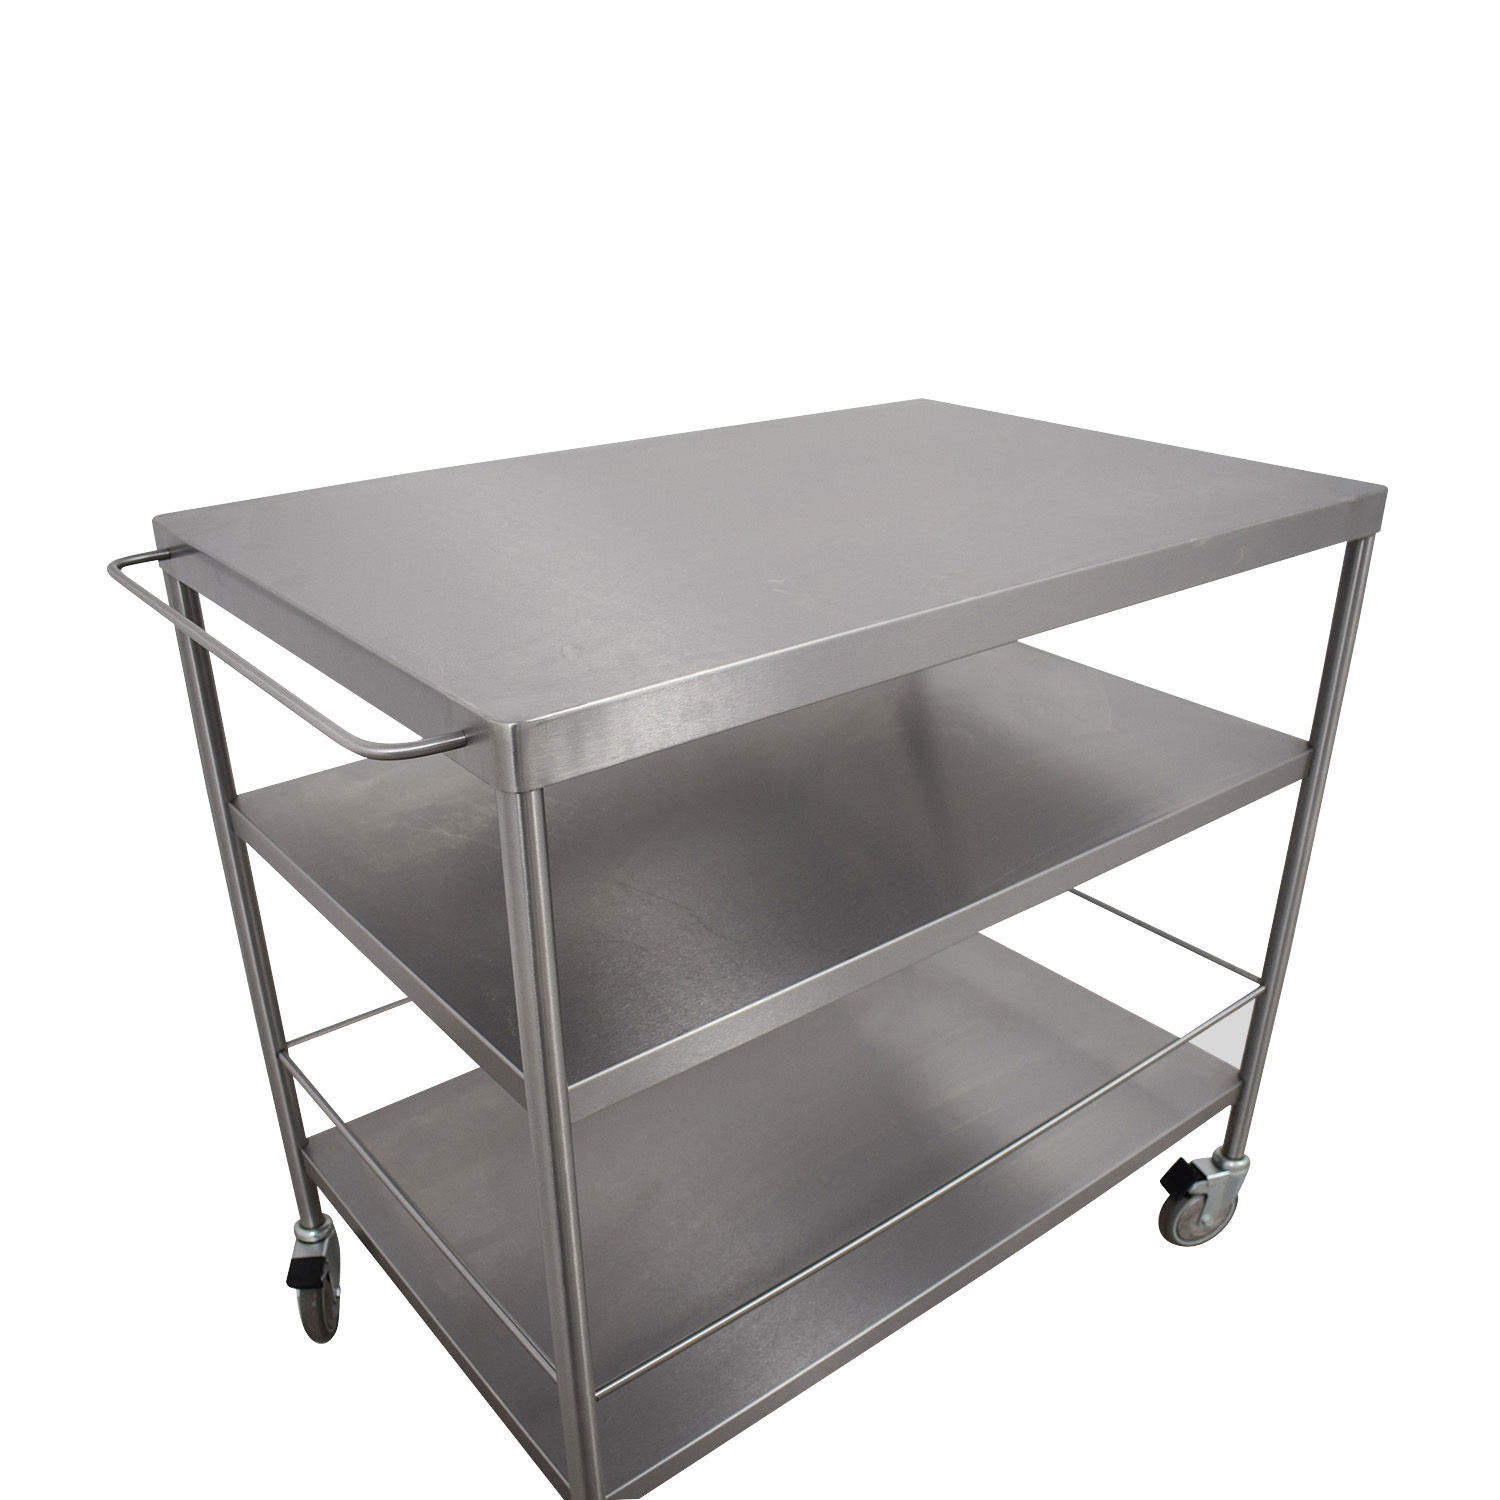 stainless steel kitchen cart cast iron undermount sink 59 off ikea tables